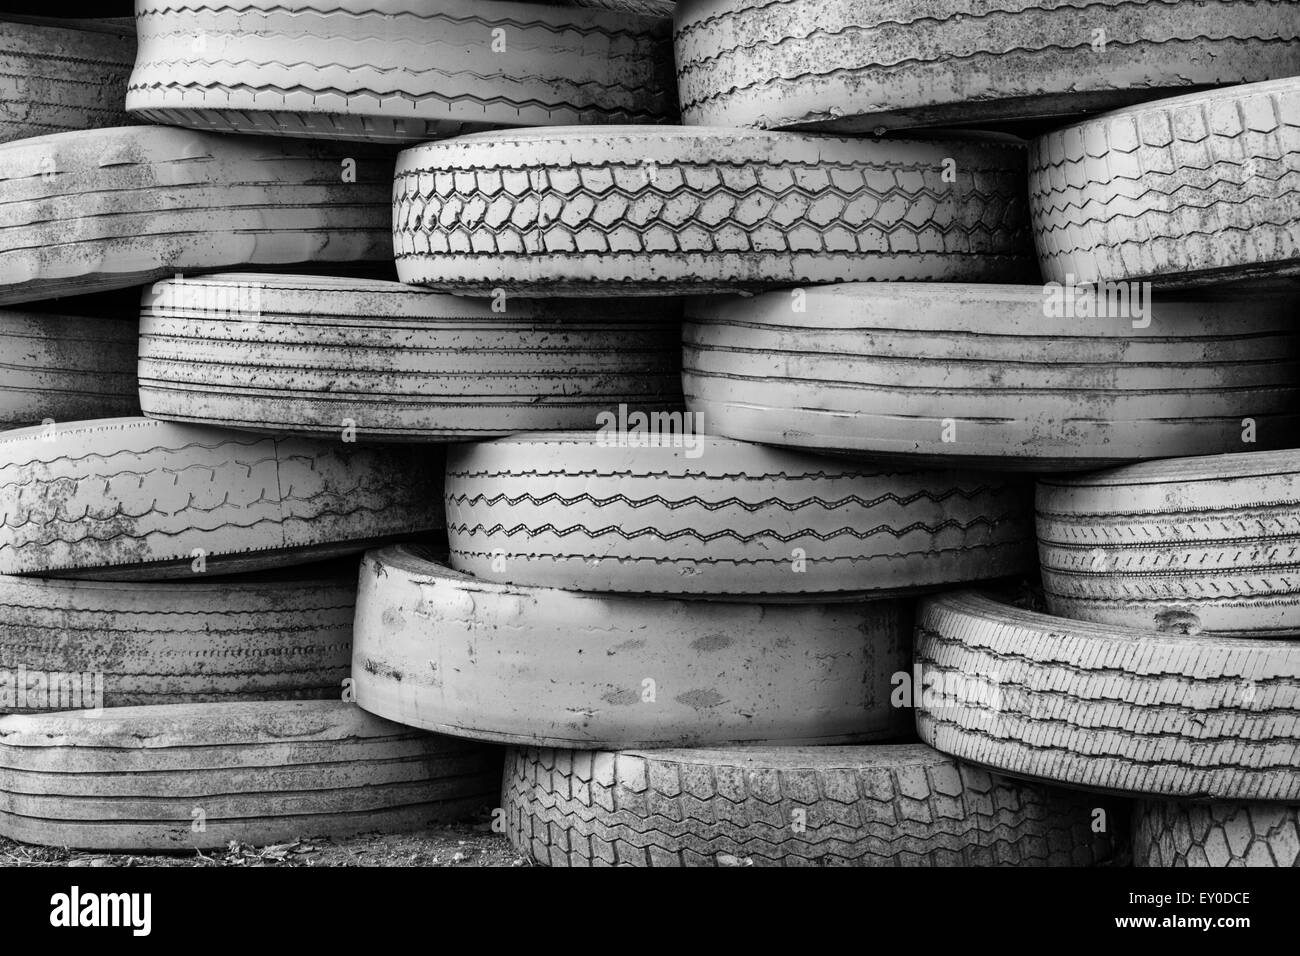 Old tires stacked - Stock Image